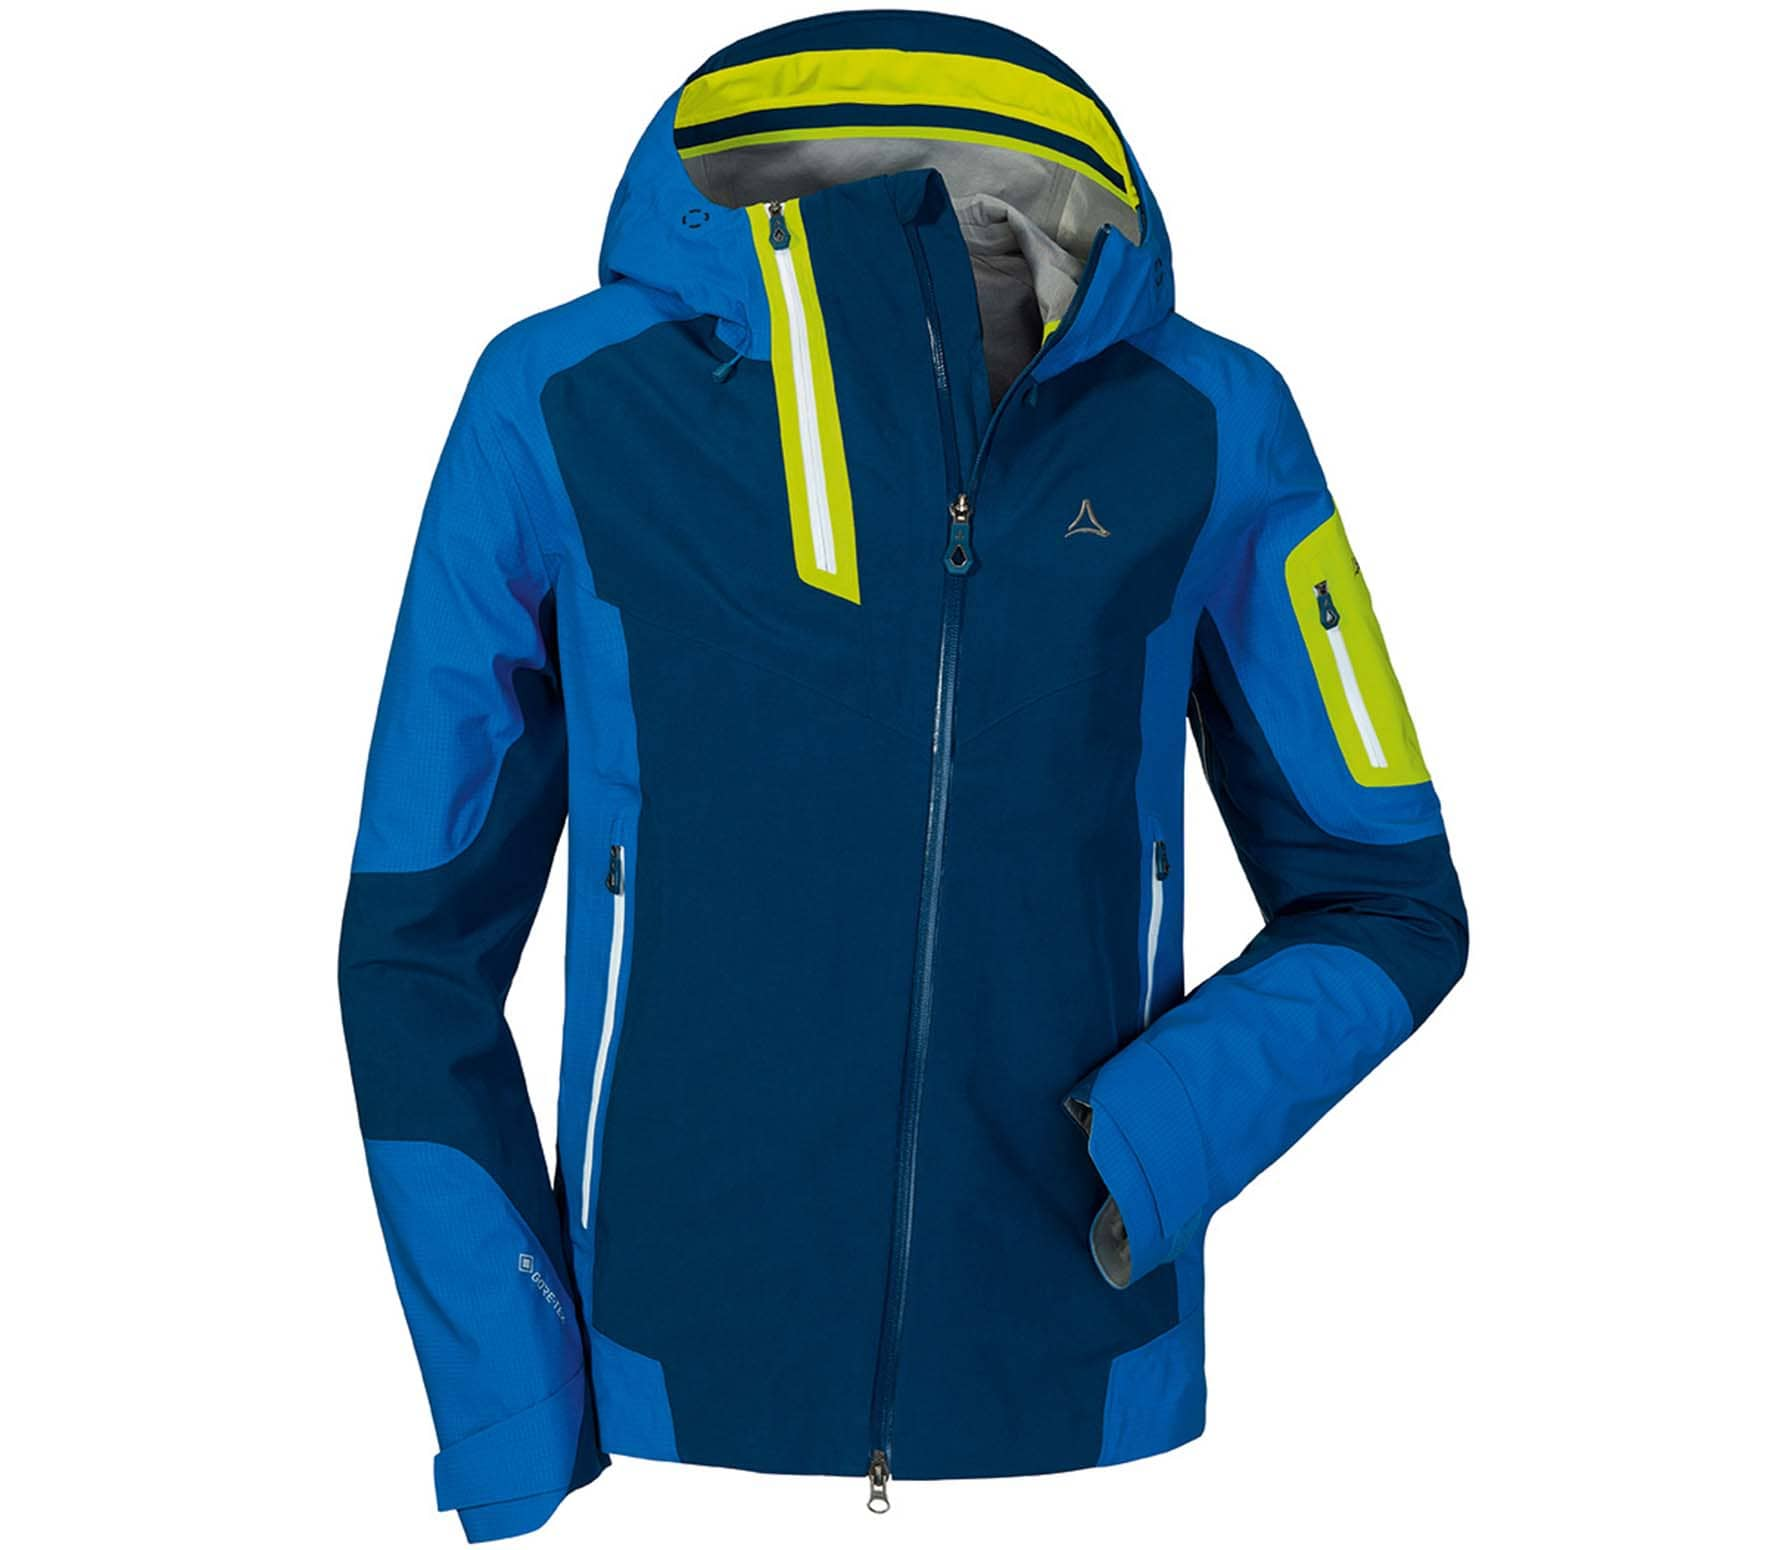 3L Keylong2 Men Ski Jacket